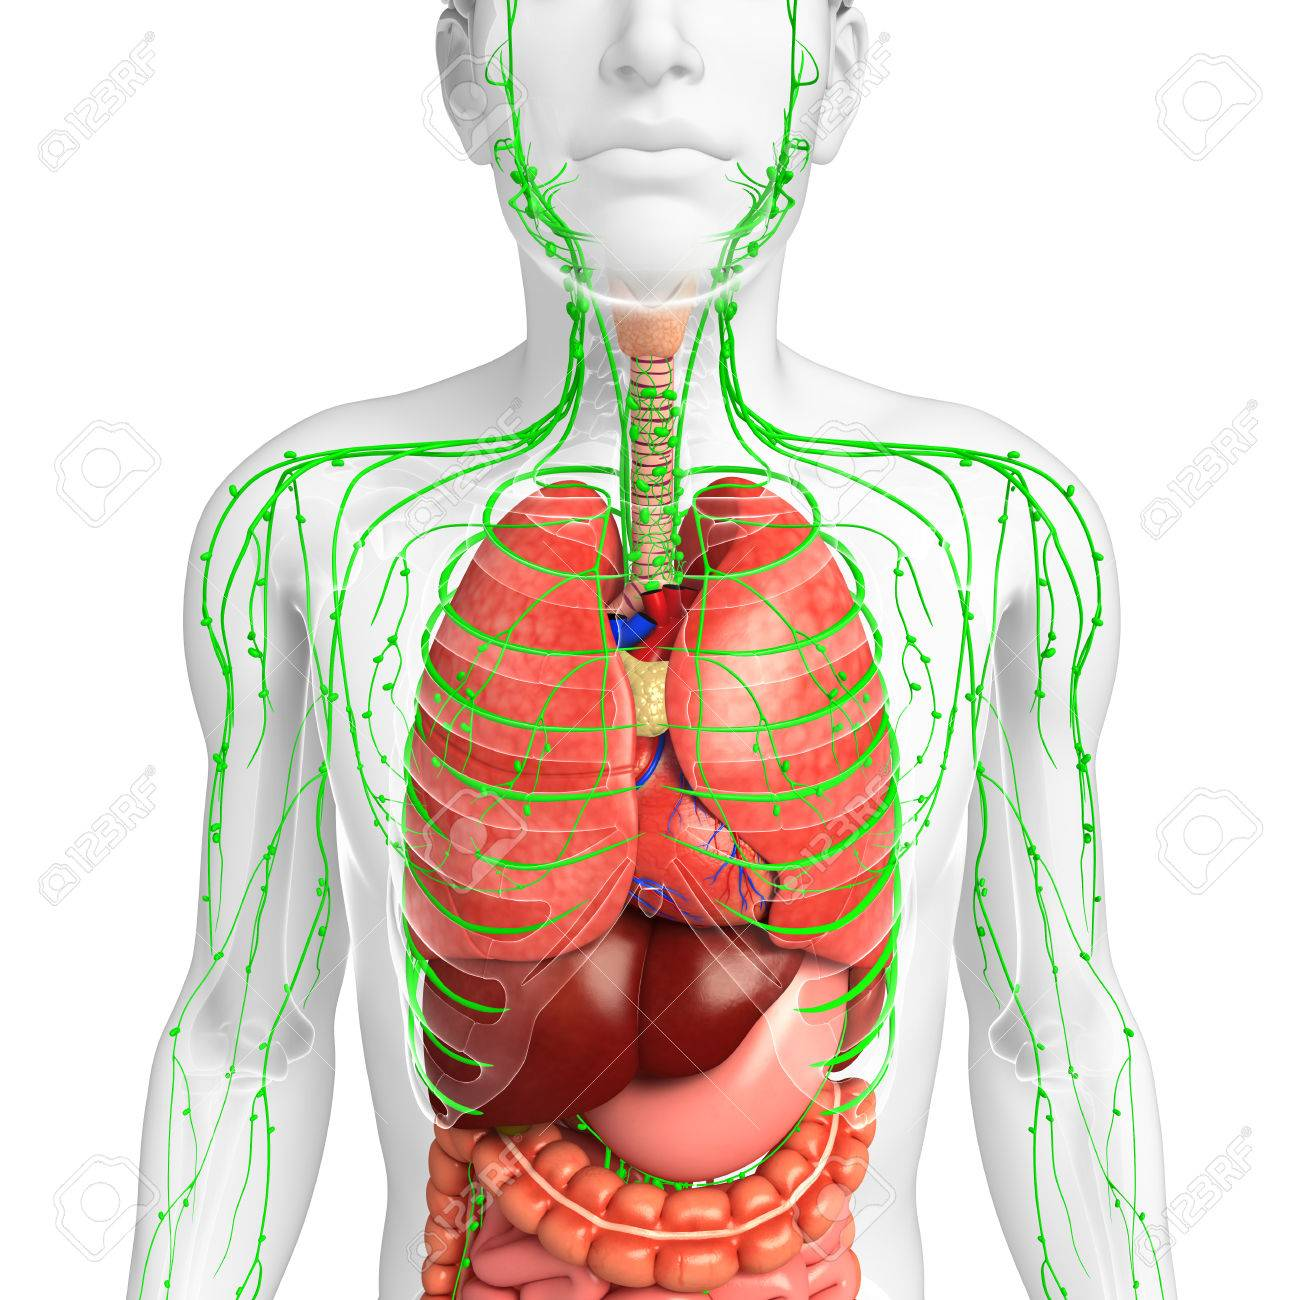 hight resolution of illustration of male body lymphatic and digestive system artwork stock illustration 44273031